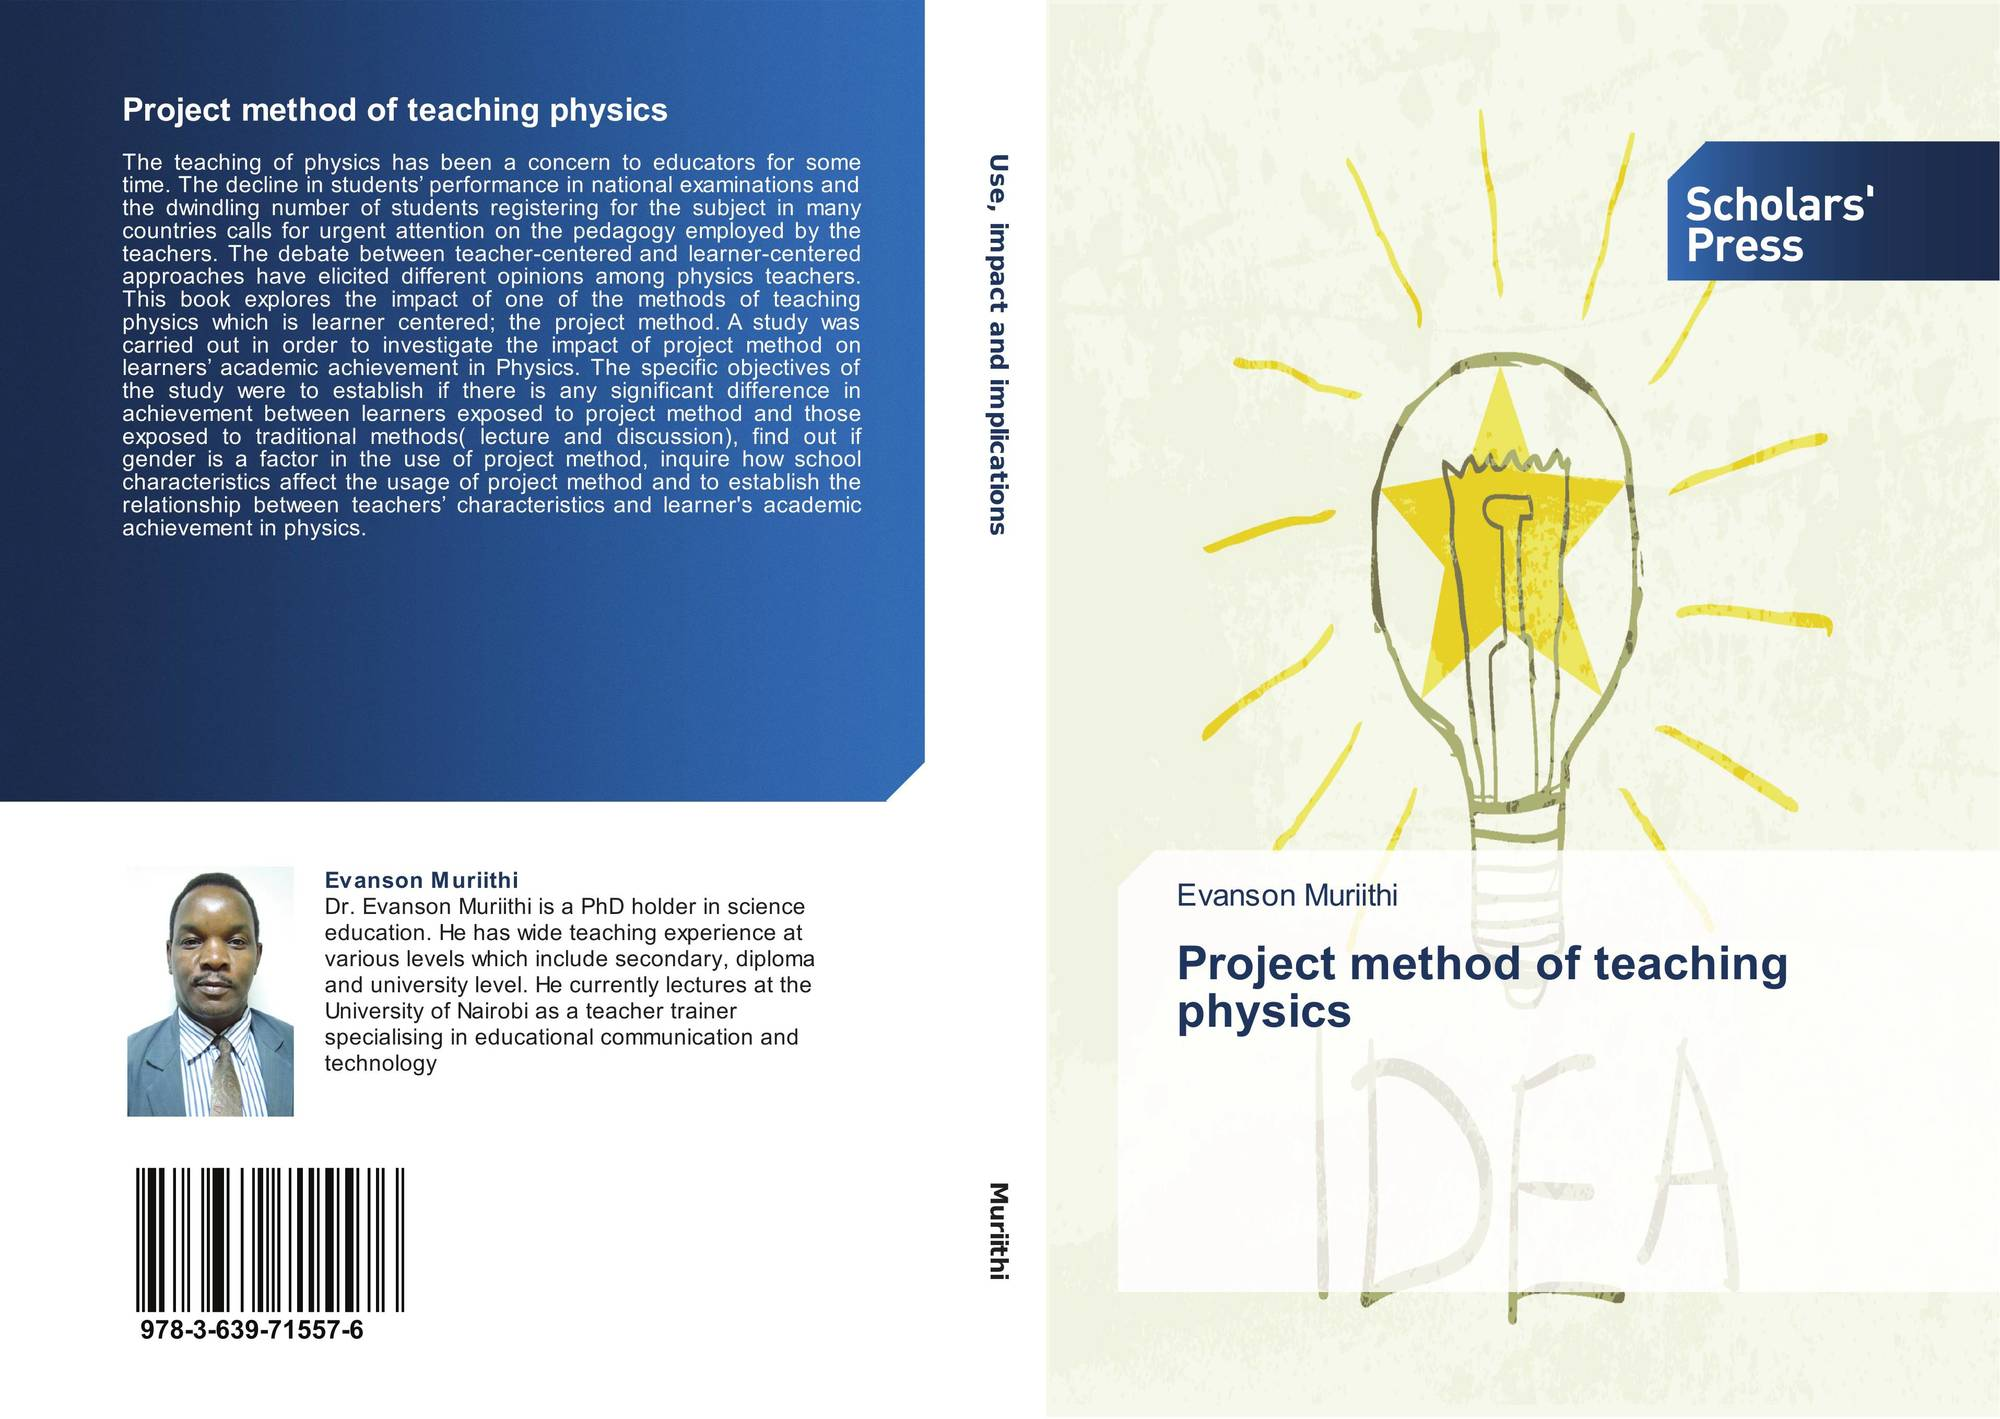 Project method of teaching physics, 978-3-639-71557-6